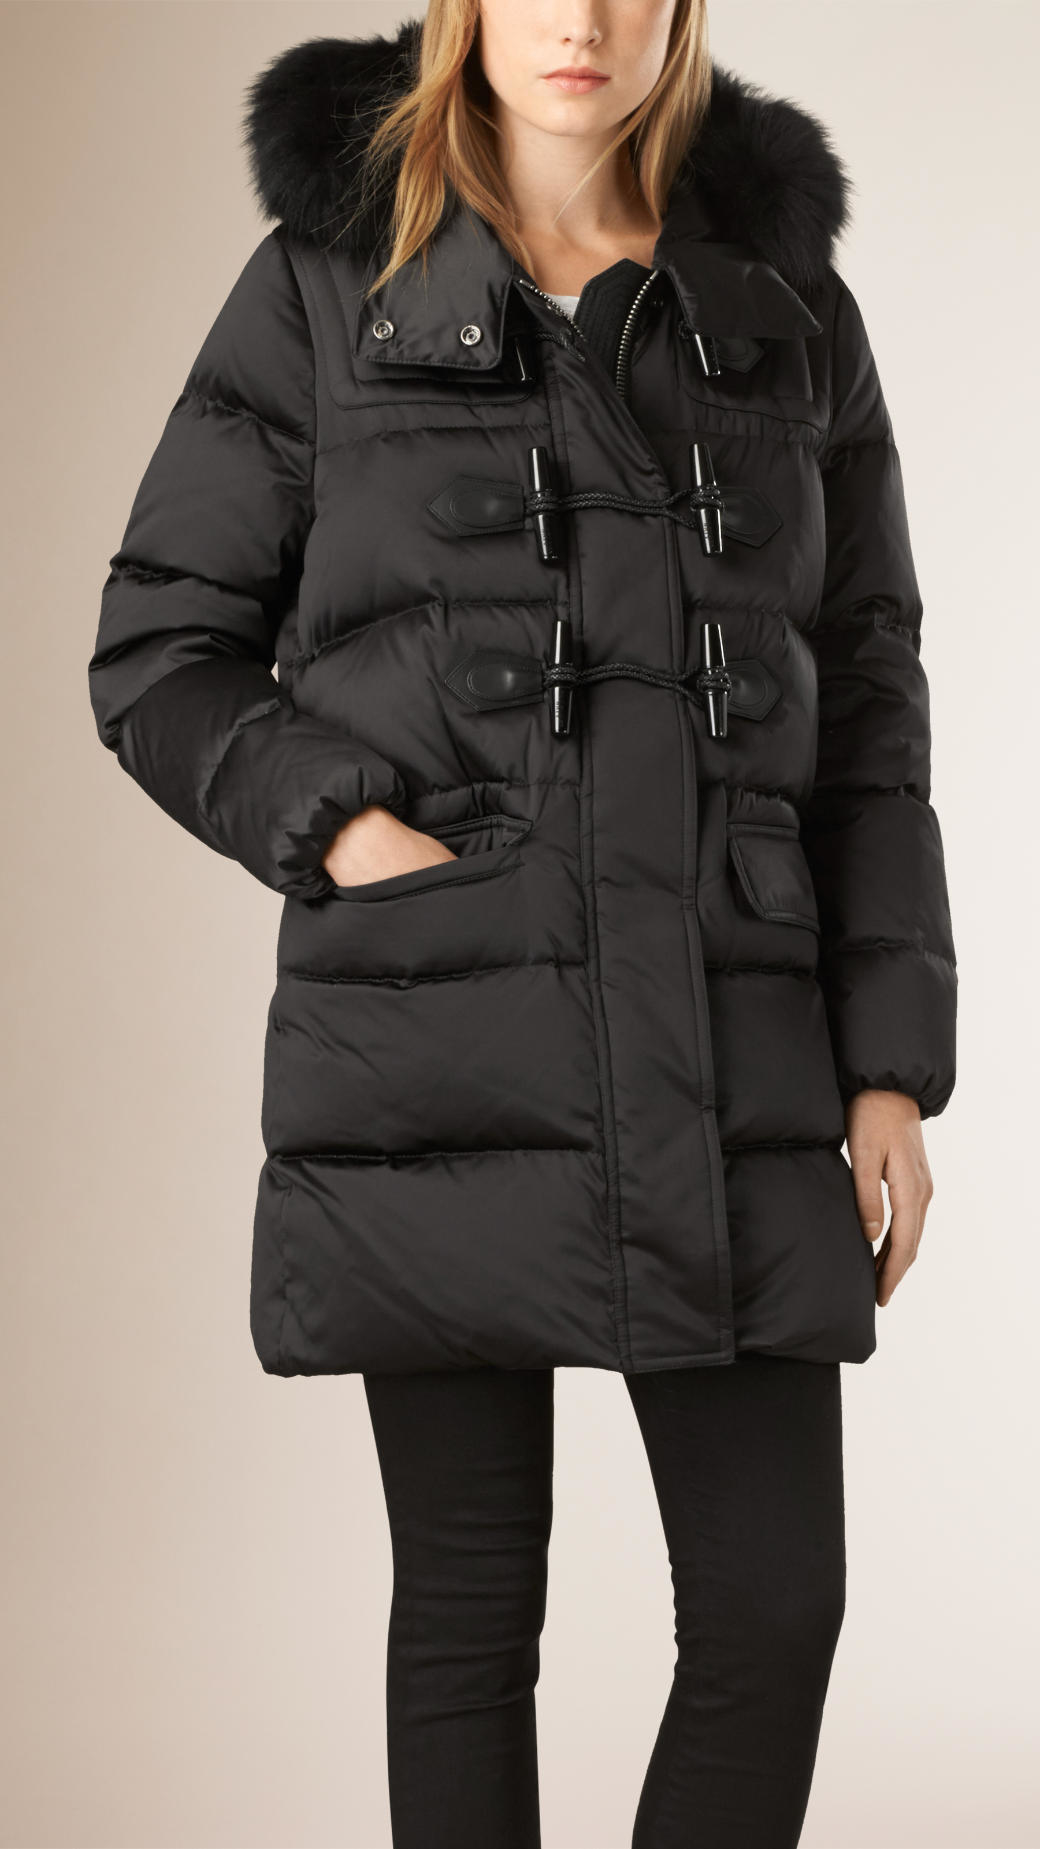 Burberry Fox Fur Trim Down-filled Duffle Coat Black in Black | Lyst